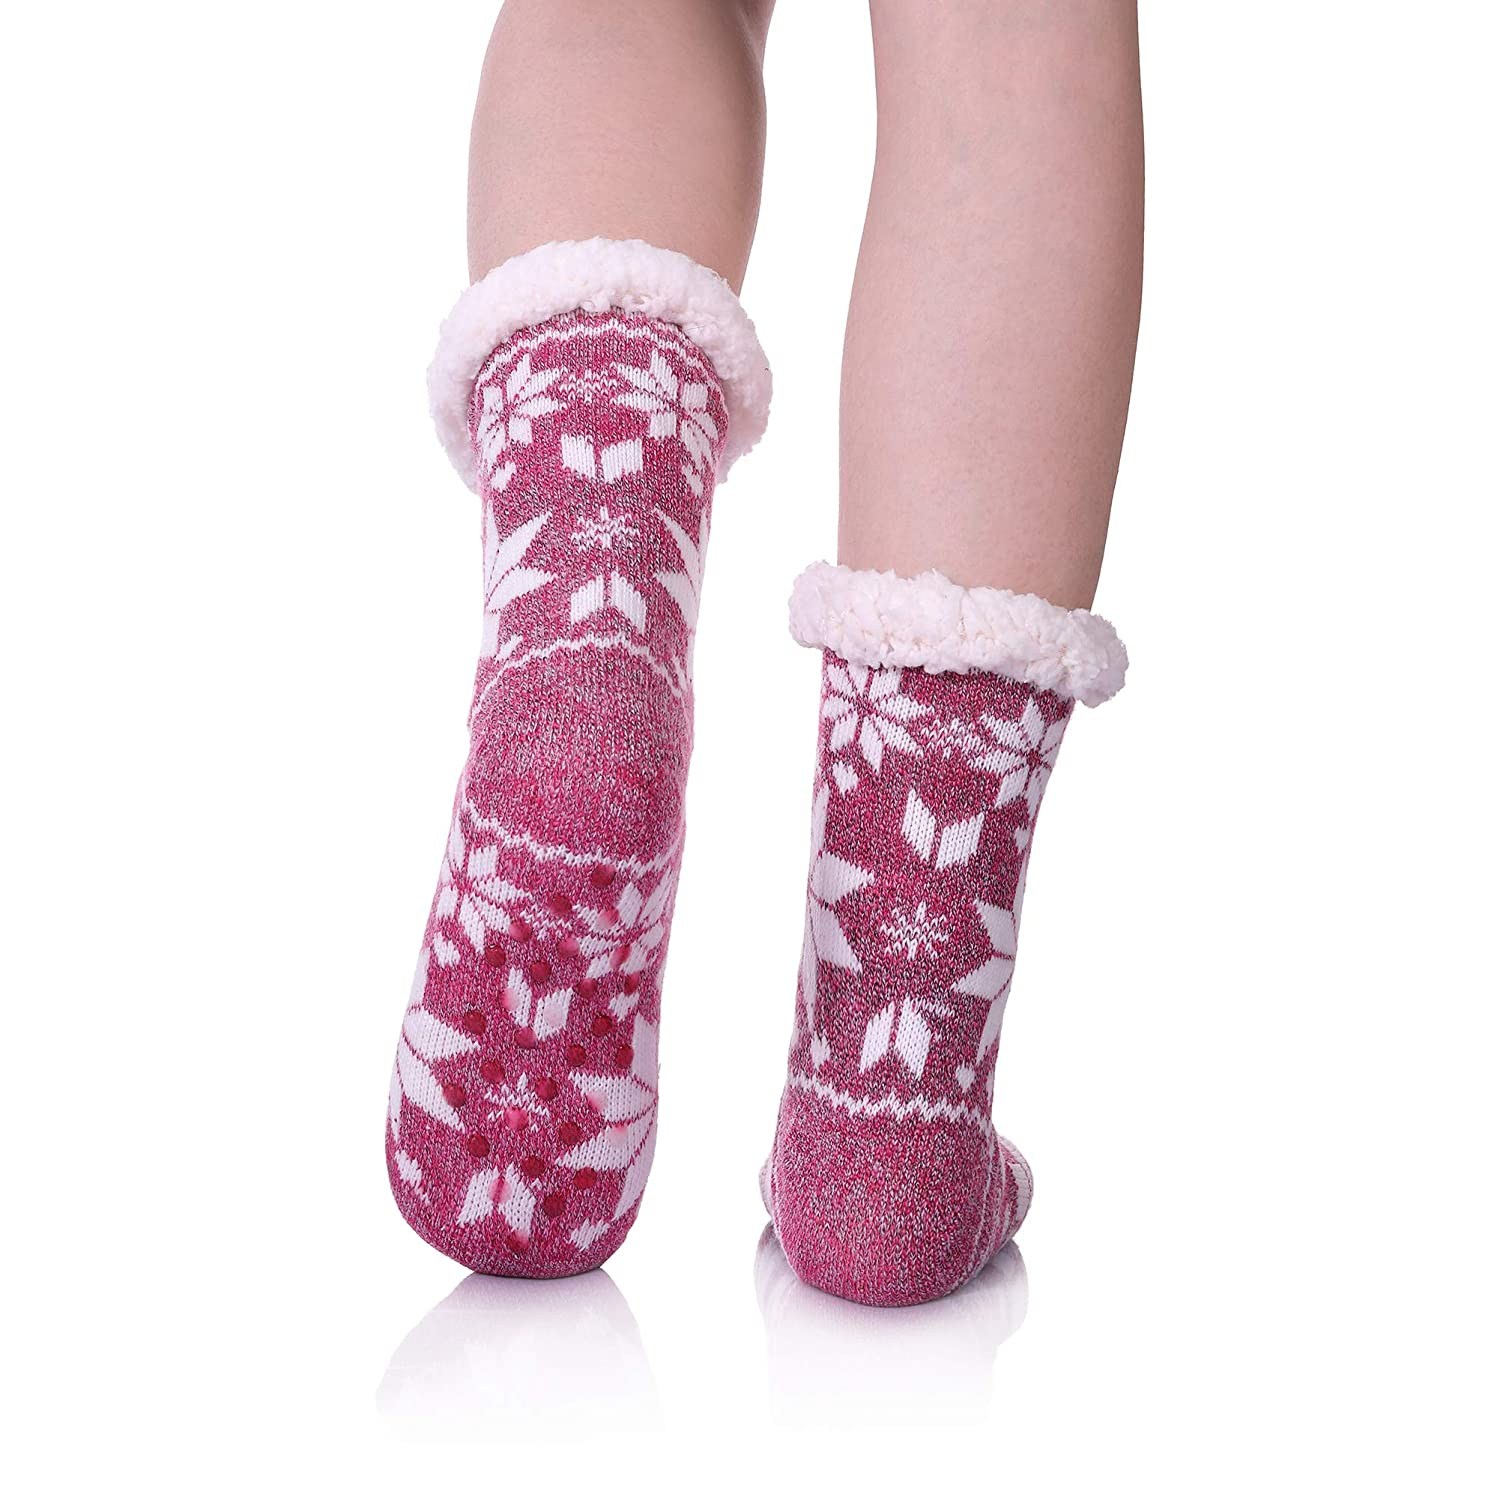 5e3a420fb5418 Womens Winter Fleece Lining Knit Christmas Non Slip Knee Highs Stockings  Warm Fuzzy Cozy Slipper Socks larger image